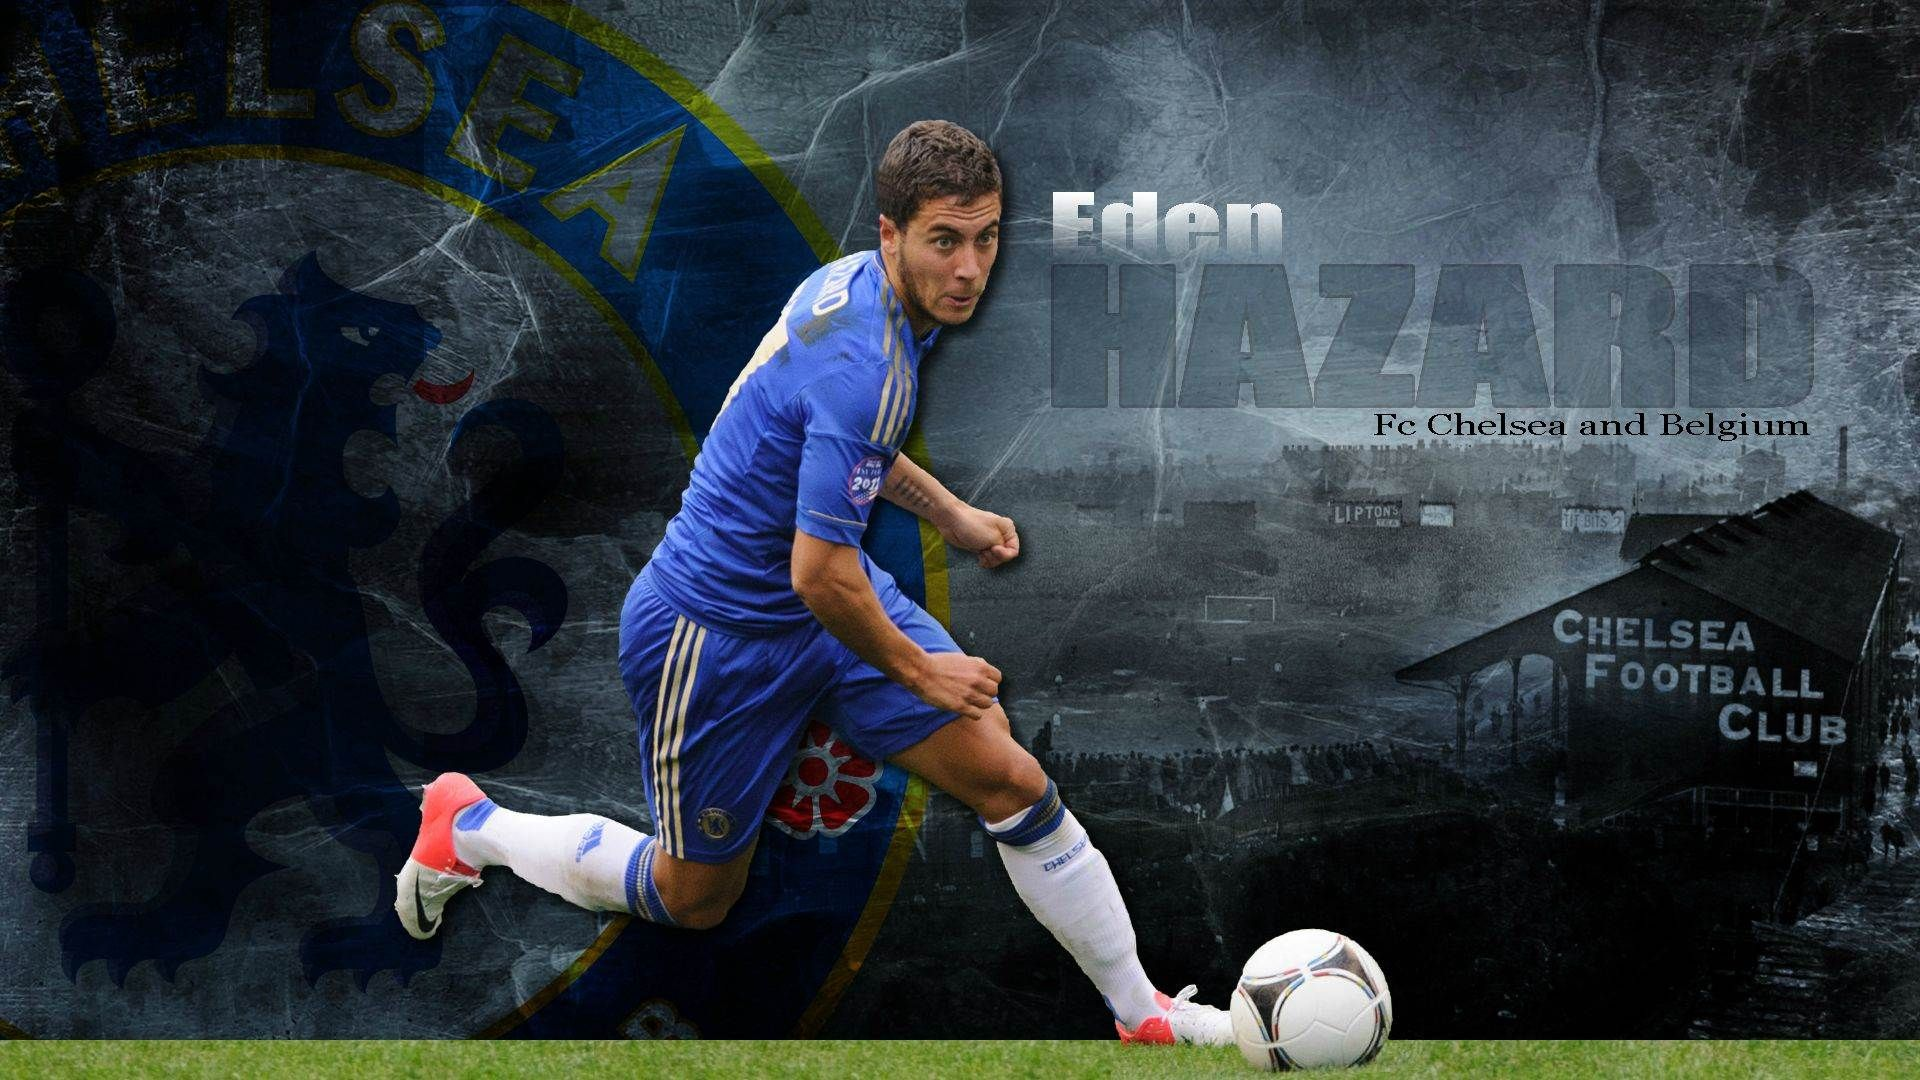 Download Eden Hazard Wallpapers Hd Wallpaper 1920 1080 Eden Hazard